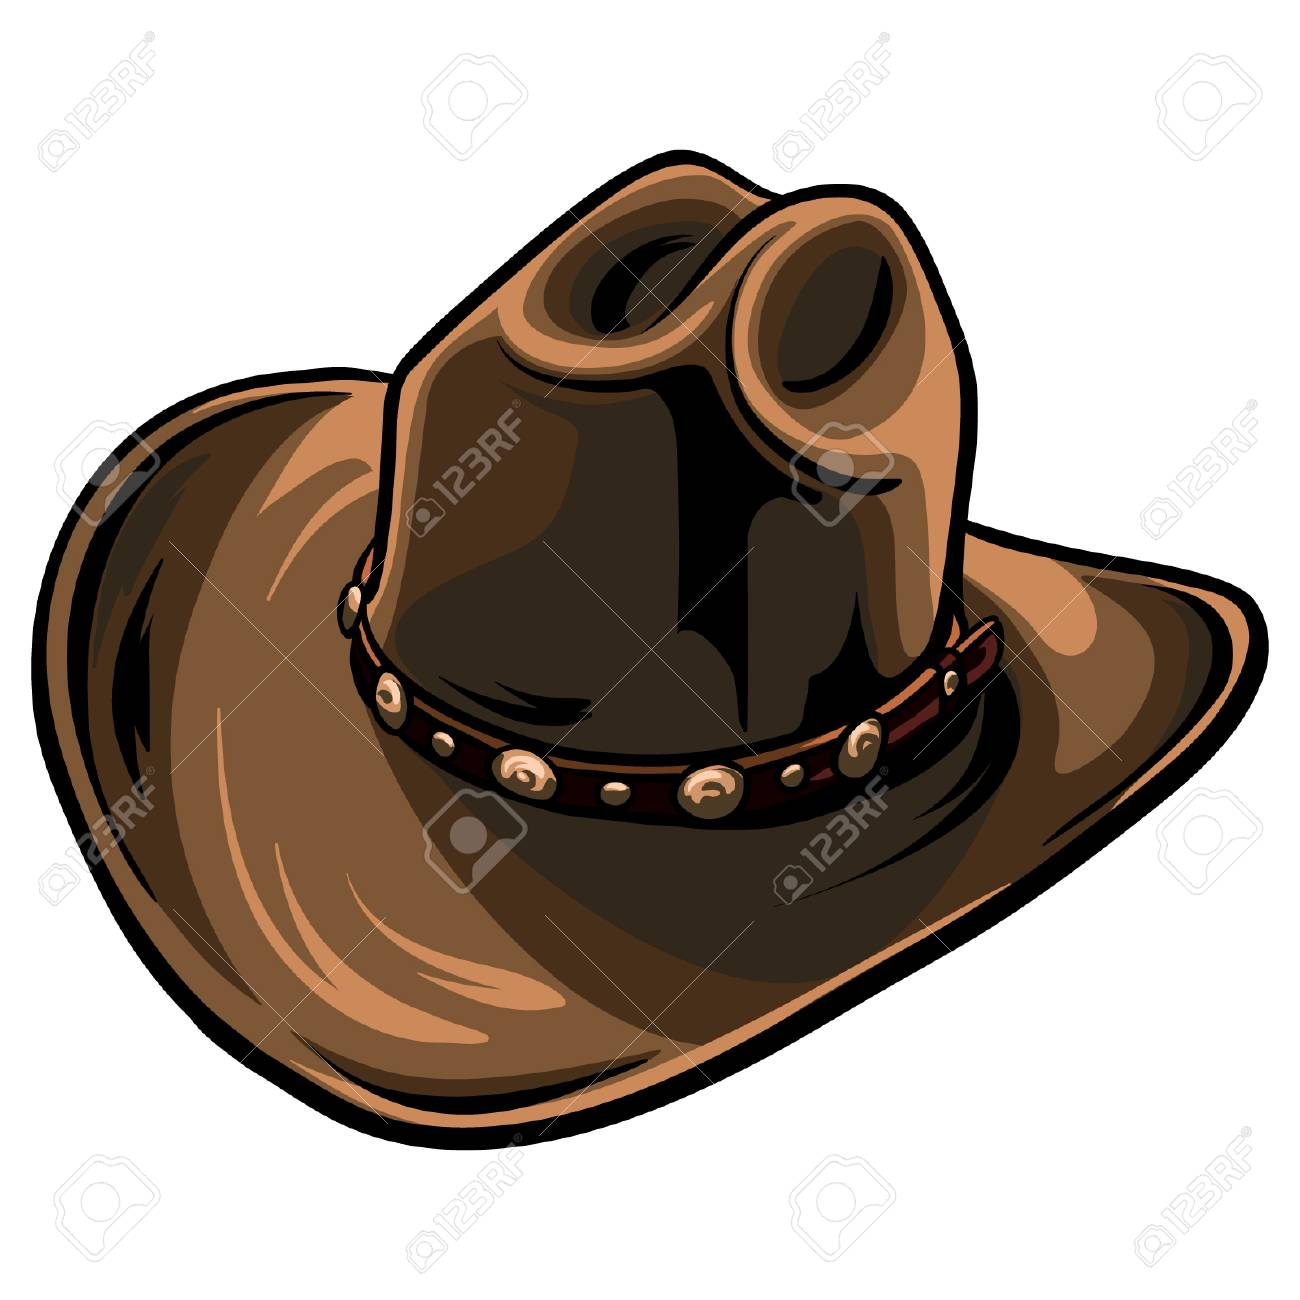 bfe3a7417a030 Brown cowboy hat with black outline. Cartoon sheriff hat vector format.  Stock Vector -